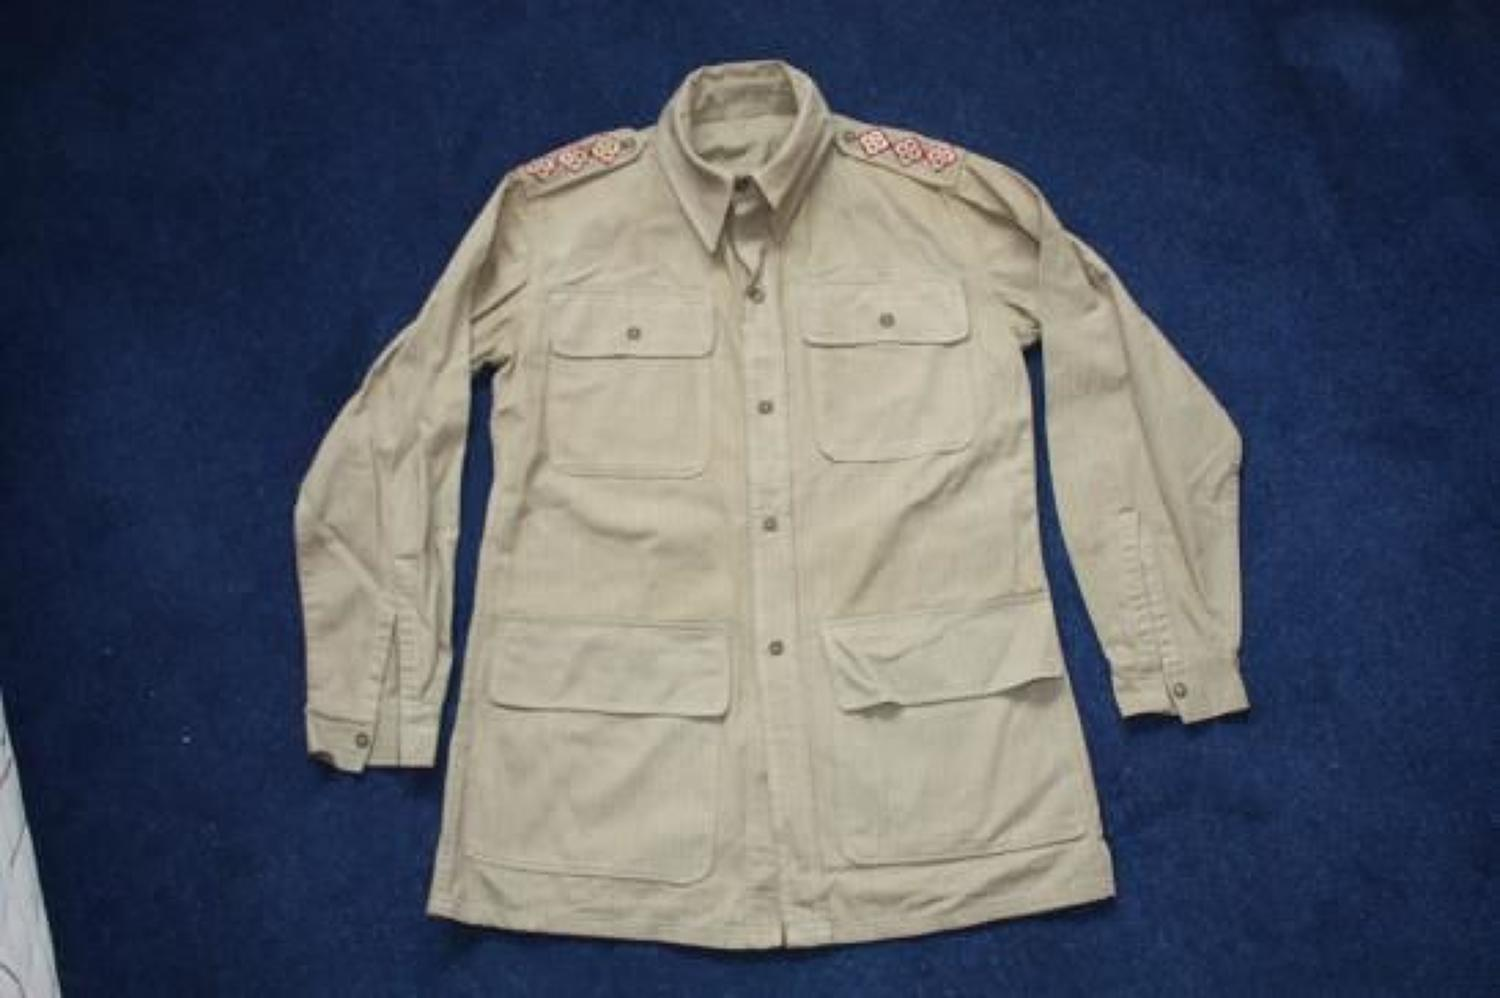 WW2 British Army Officers Bush Jacket.